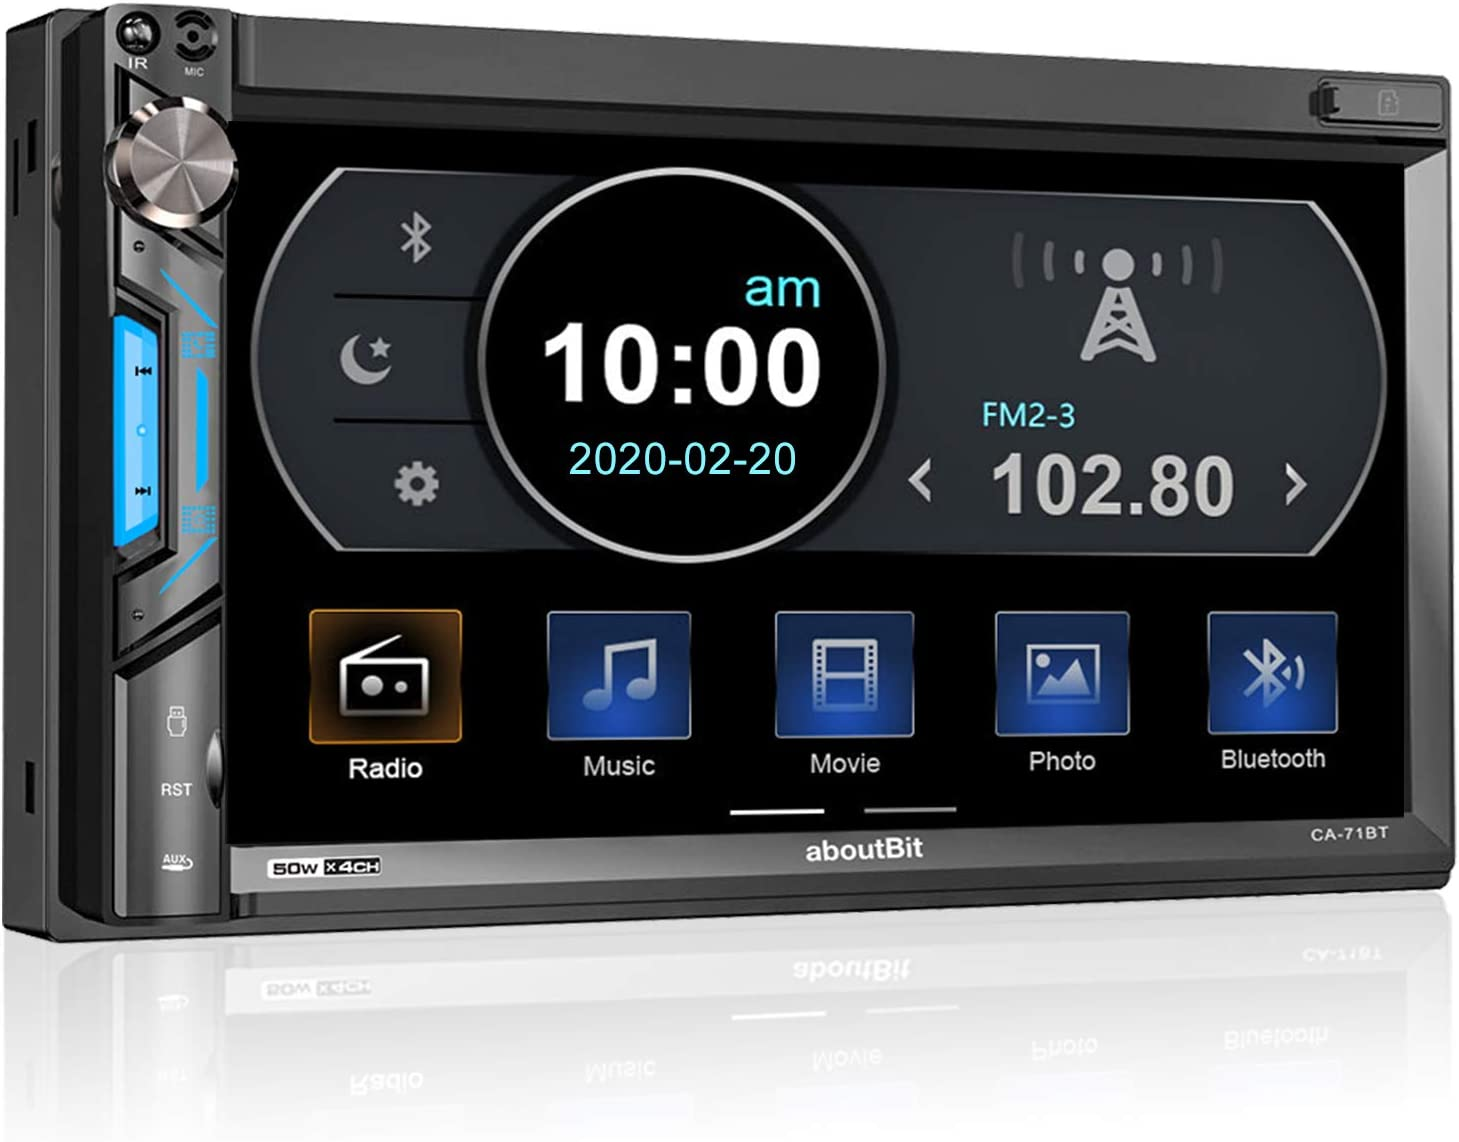 aboutBit Bluetooth 7 inch HD Touchscreen Car Audio Receiver